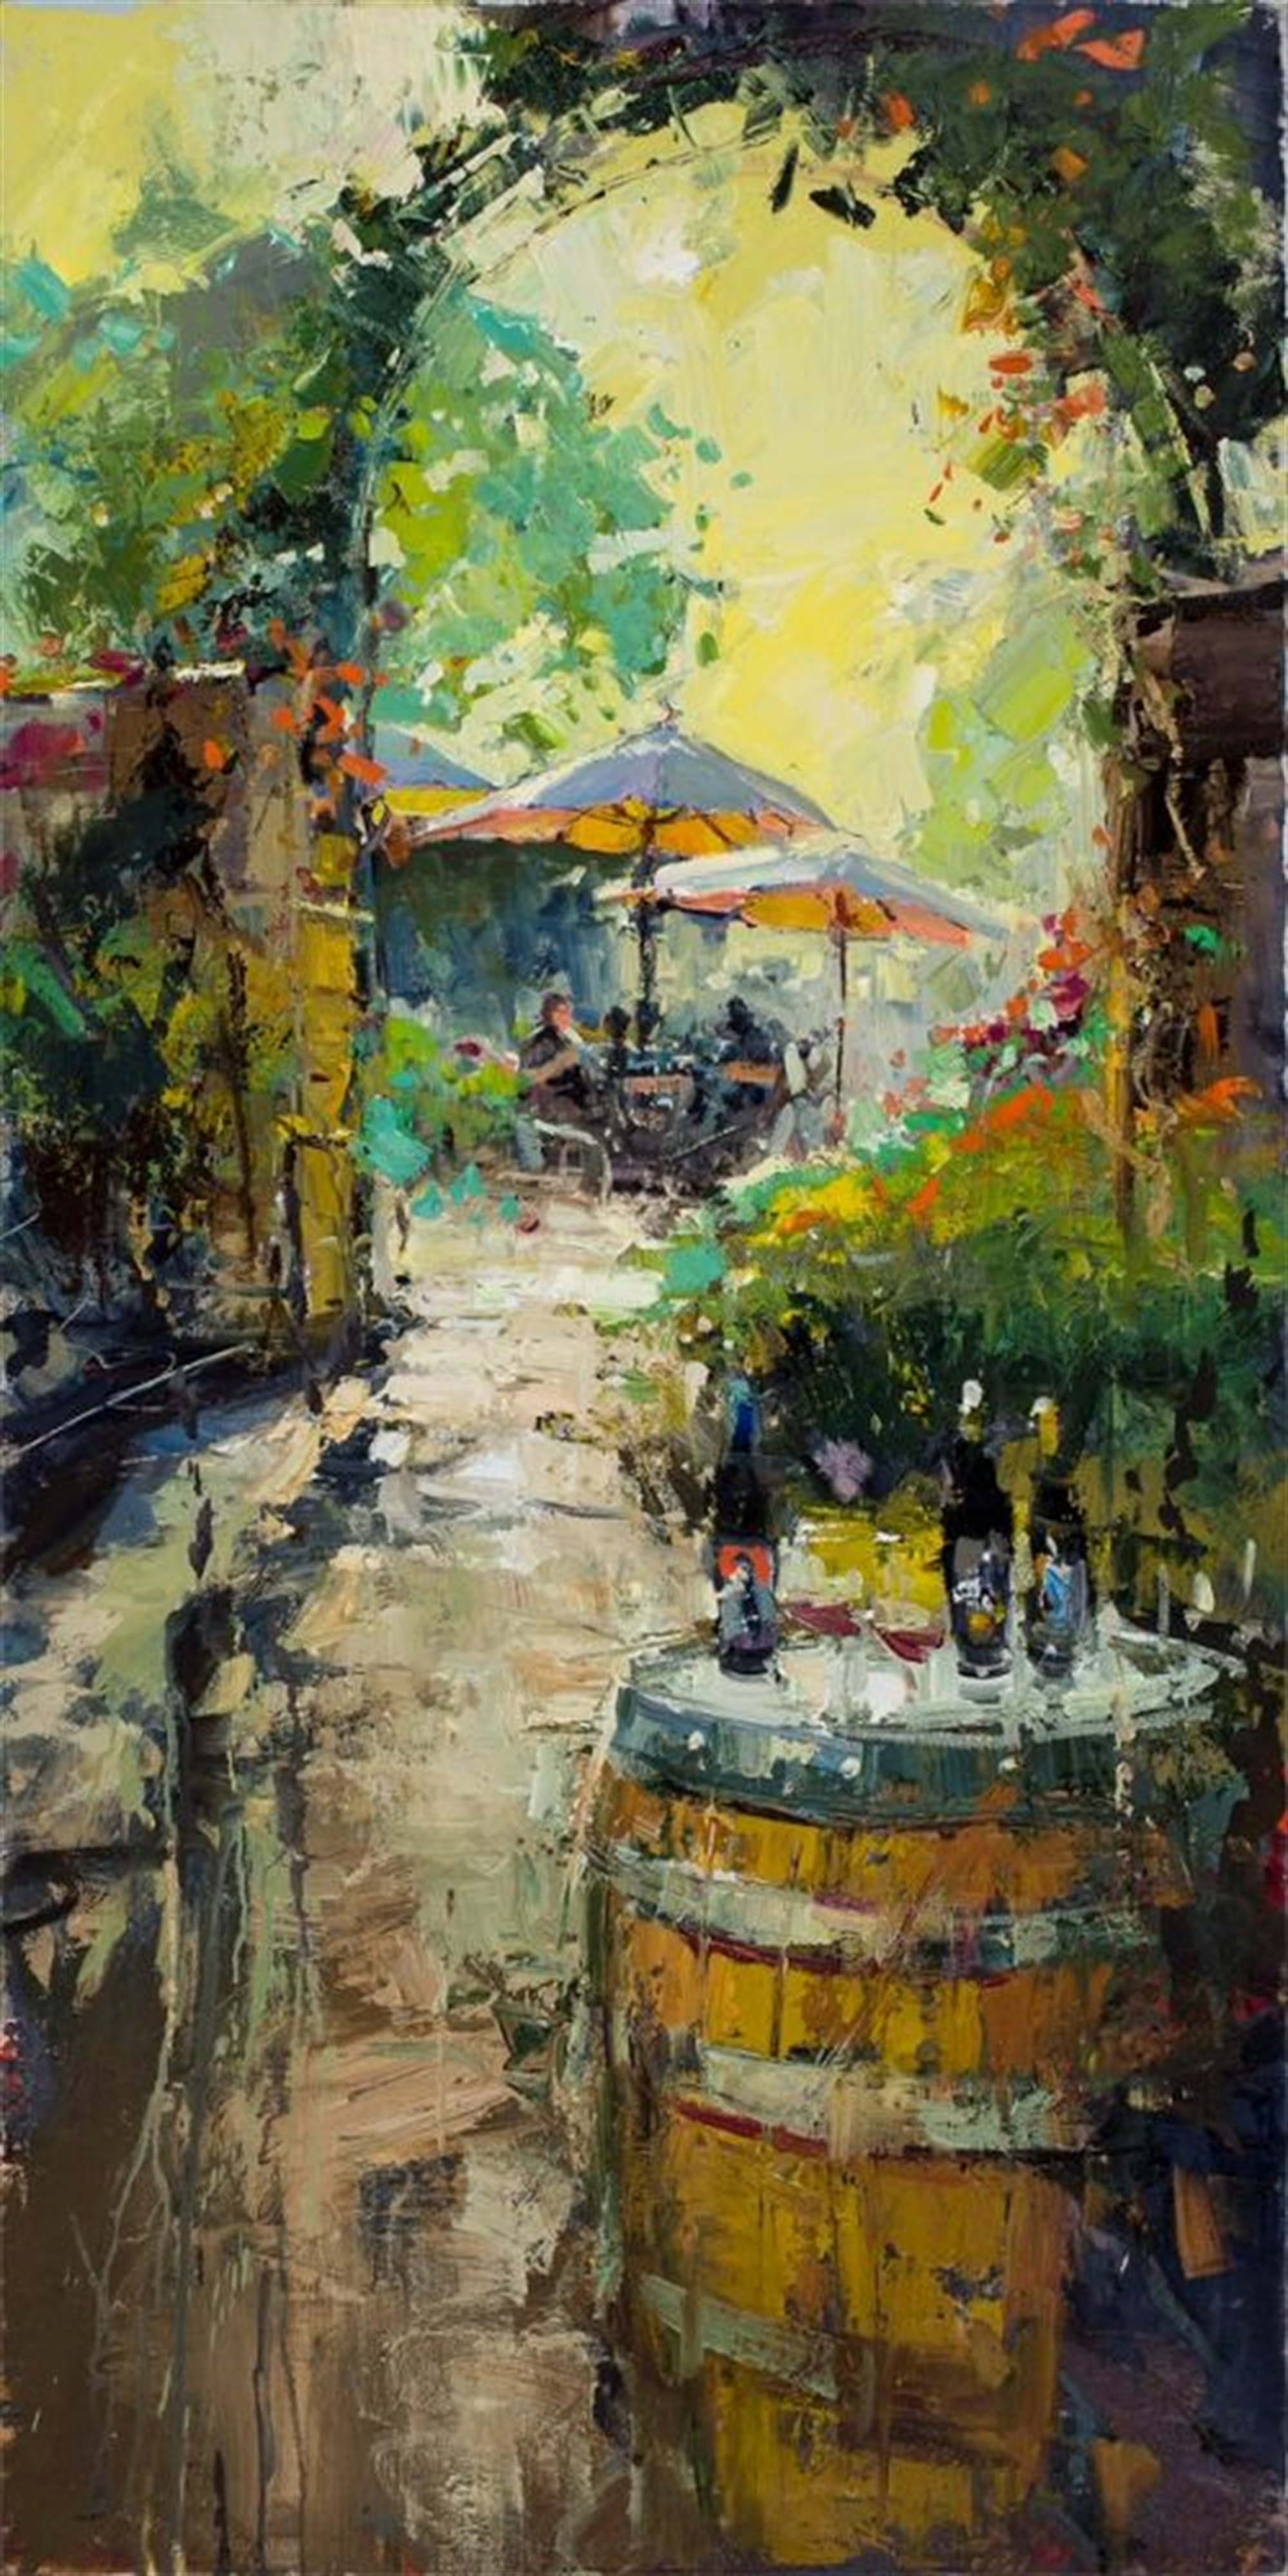 Umbrellas in the Sun by Steven Quartly